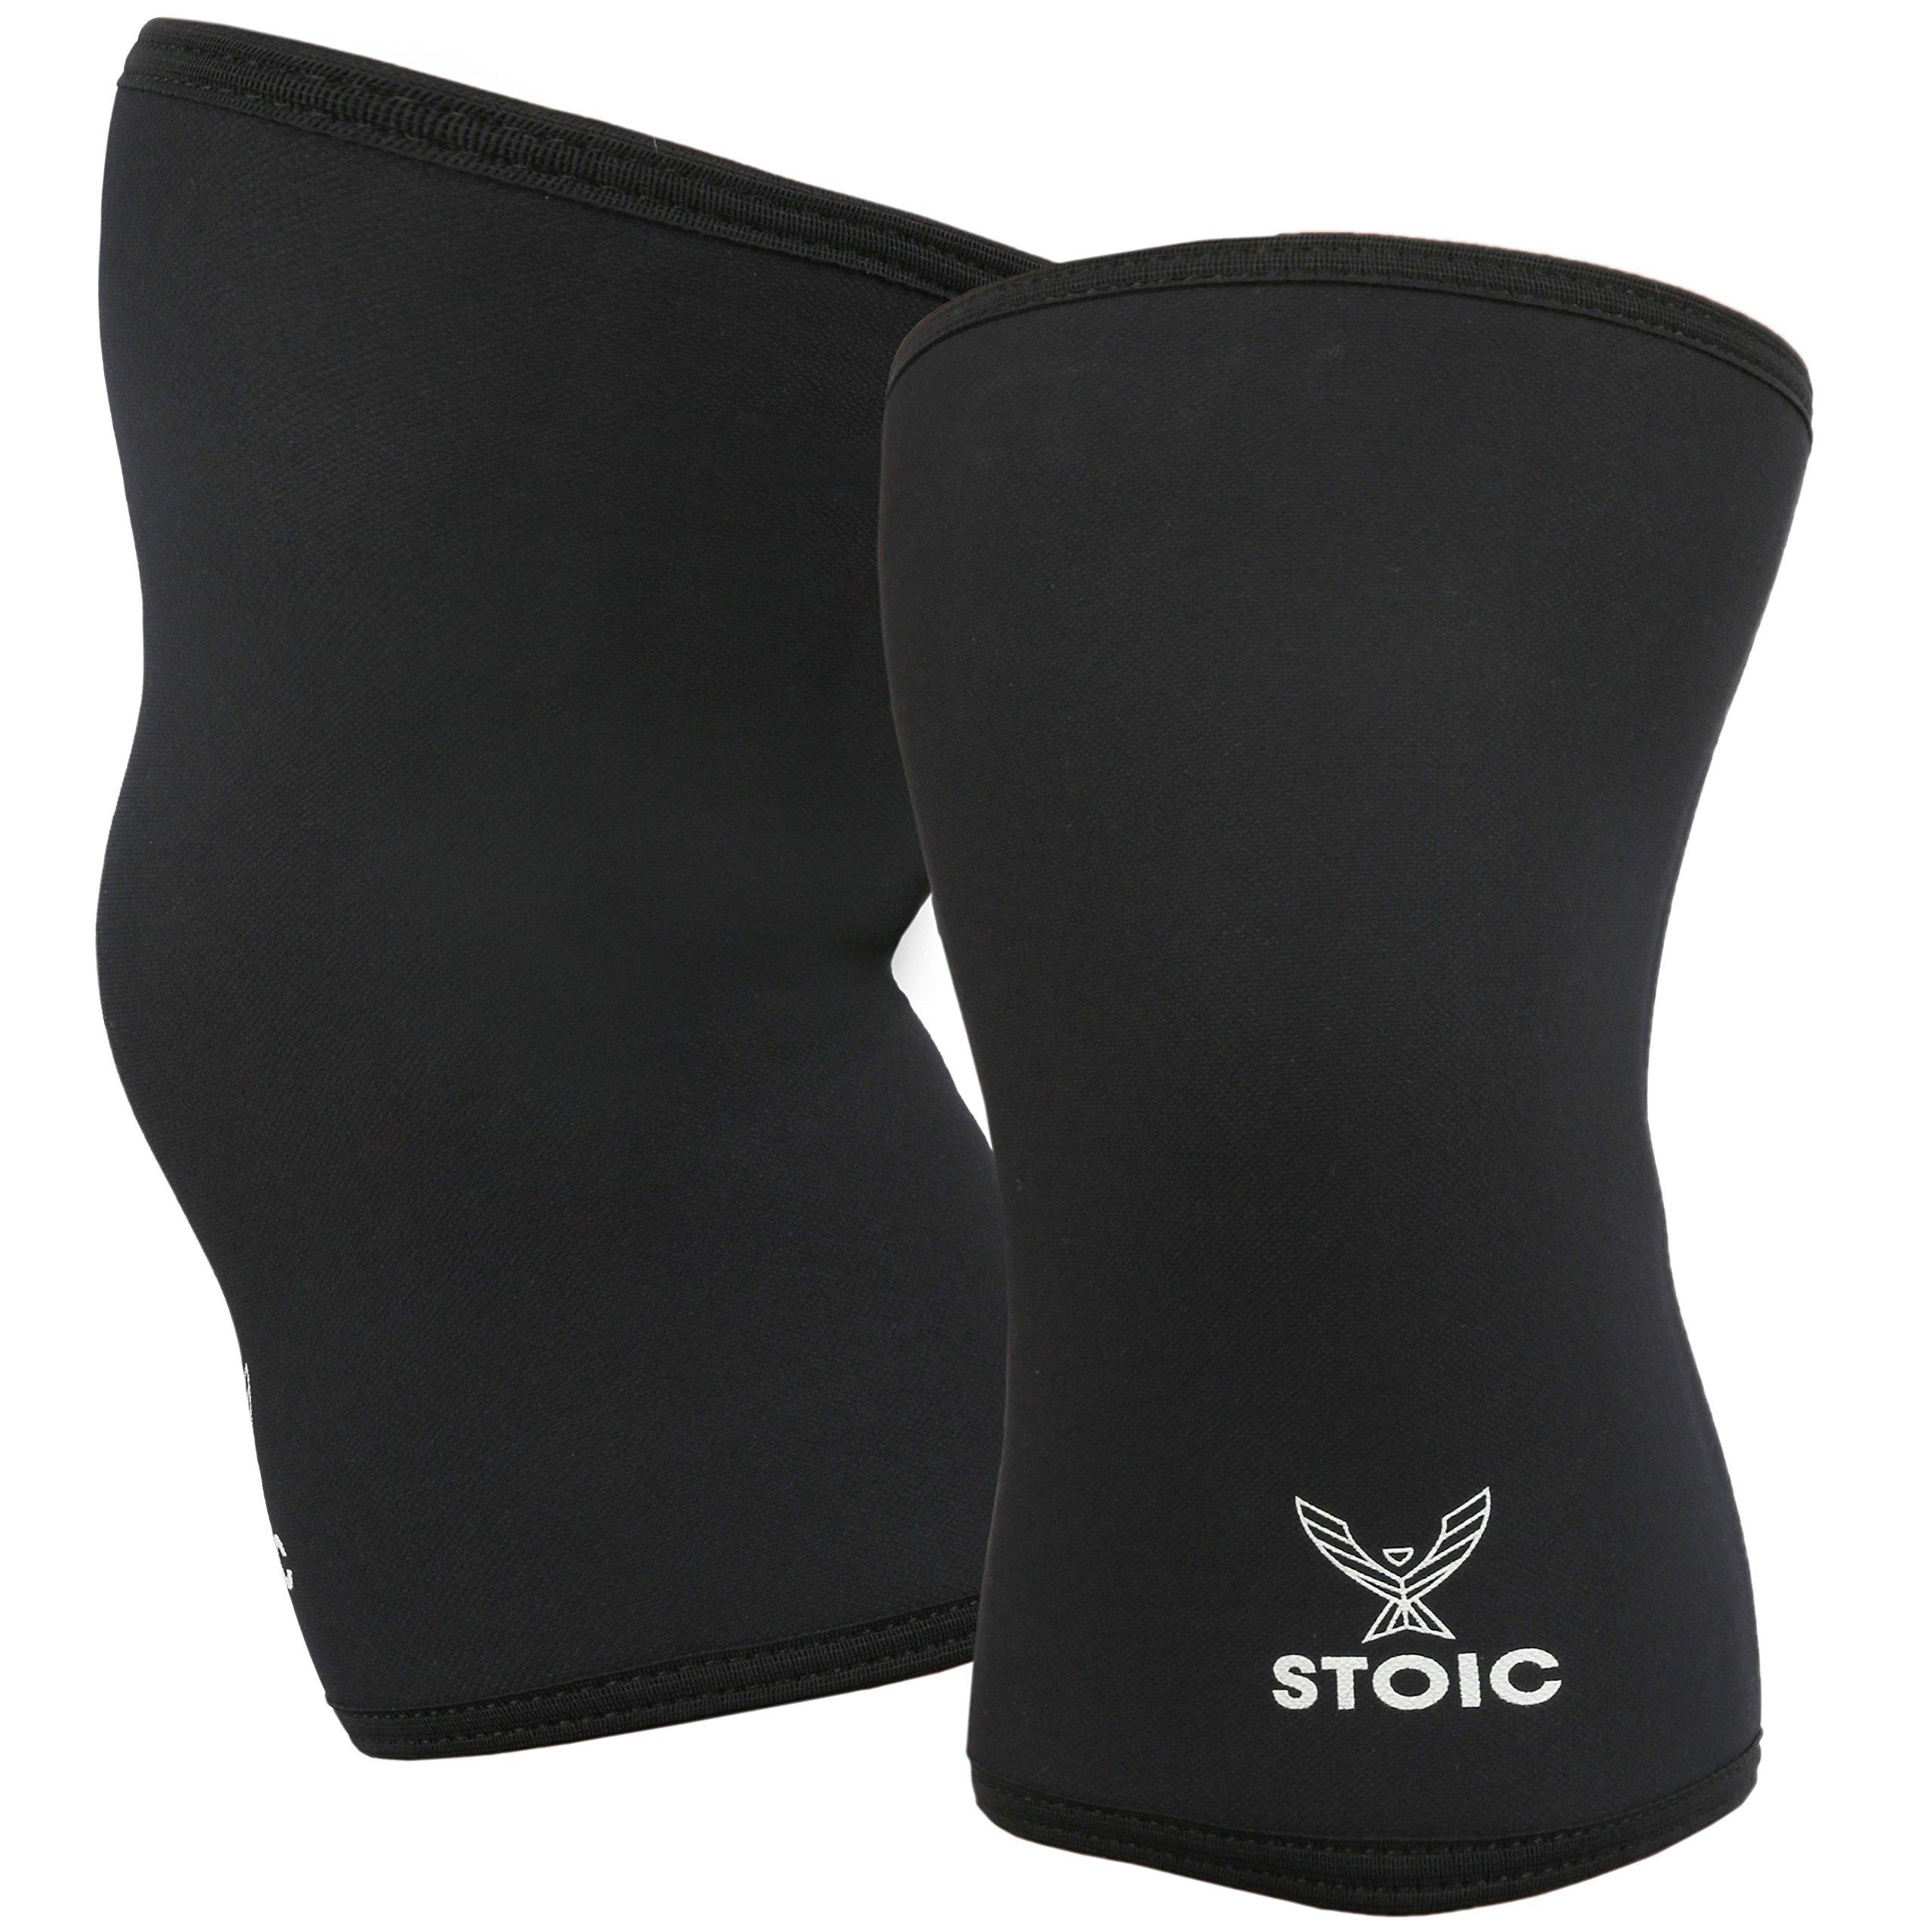 Stoic Knee Sleeves for Powerlifting - 7mm Thick Neoprene Sleeve for Bodybuilding, Weight Lifting Best for Squats, Cross Training, Strongman Professional Quality & Ultra Heavy Duty (Pair) (XX-Large)